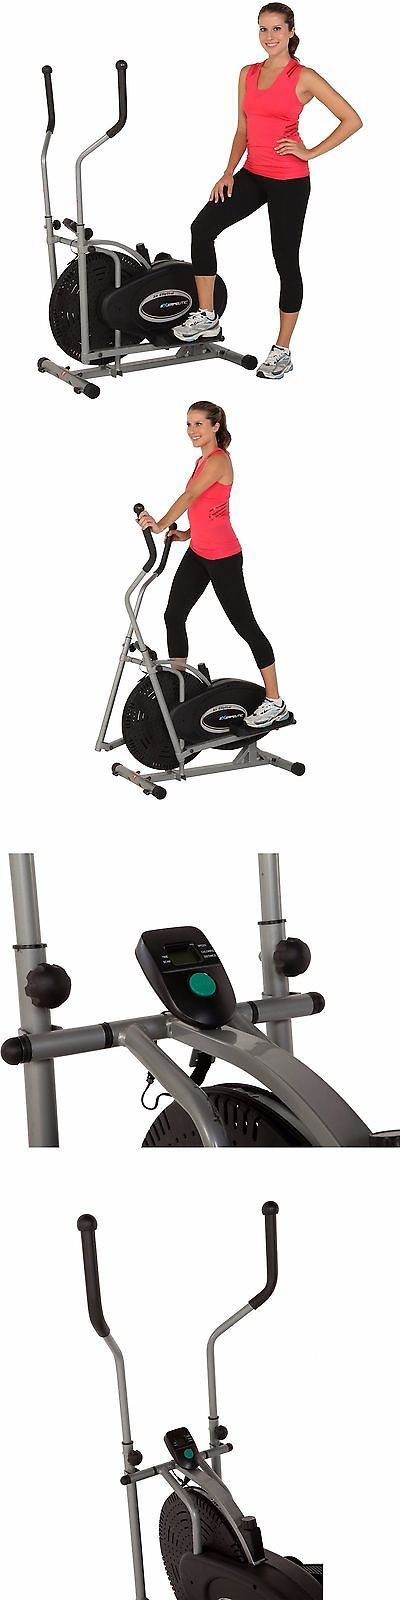 Ellipticals 72602: Elliptical Exercise Indoor Trainer Workout Machine Fitness Gym Equipment Cardio -> BUY IT NOW ONLY: $98.97 on eBay!